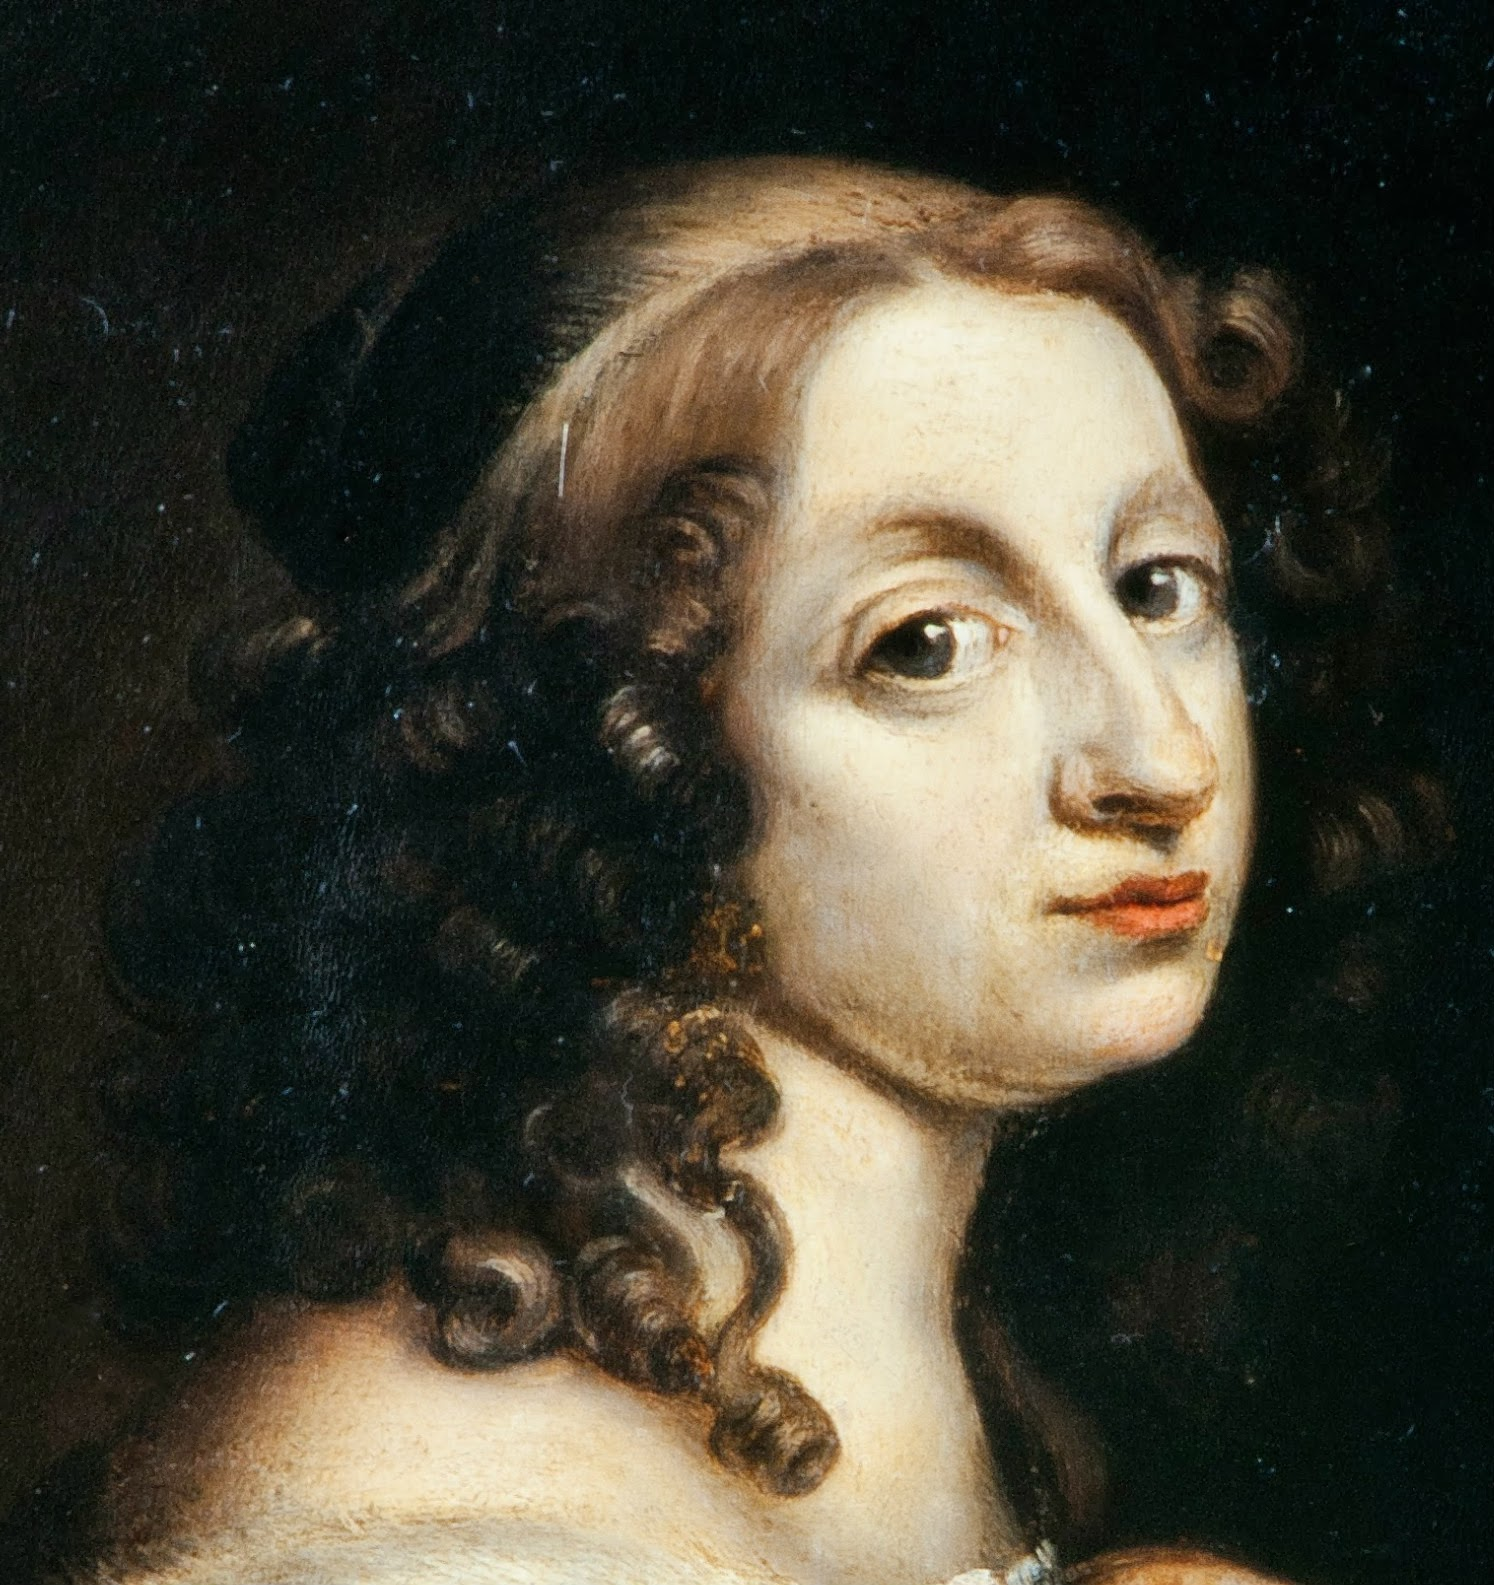 madame isis toilette a beautiful visage th century female beauty detail from a portrait of kristina queen of sweden by david beck ca 1650